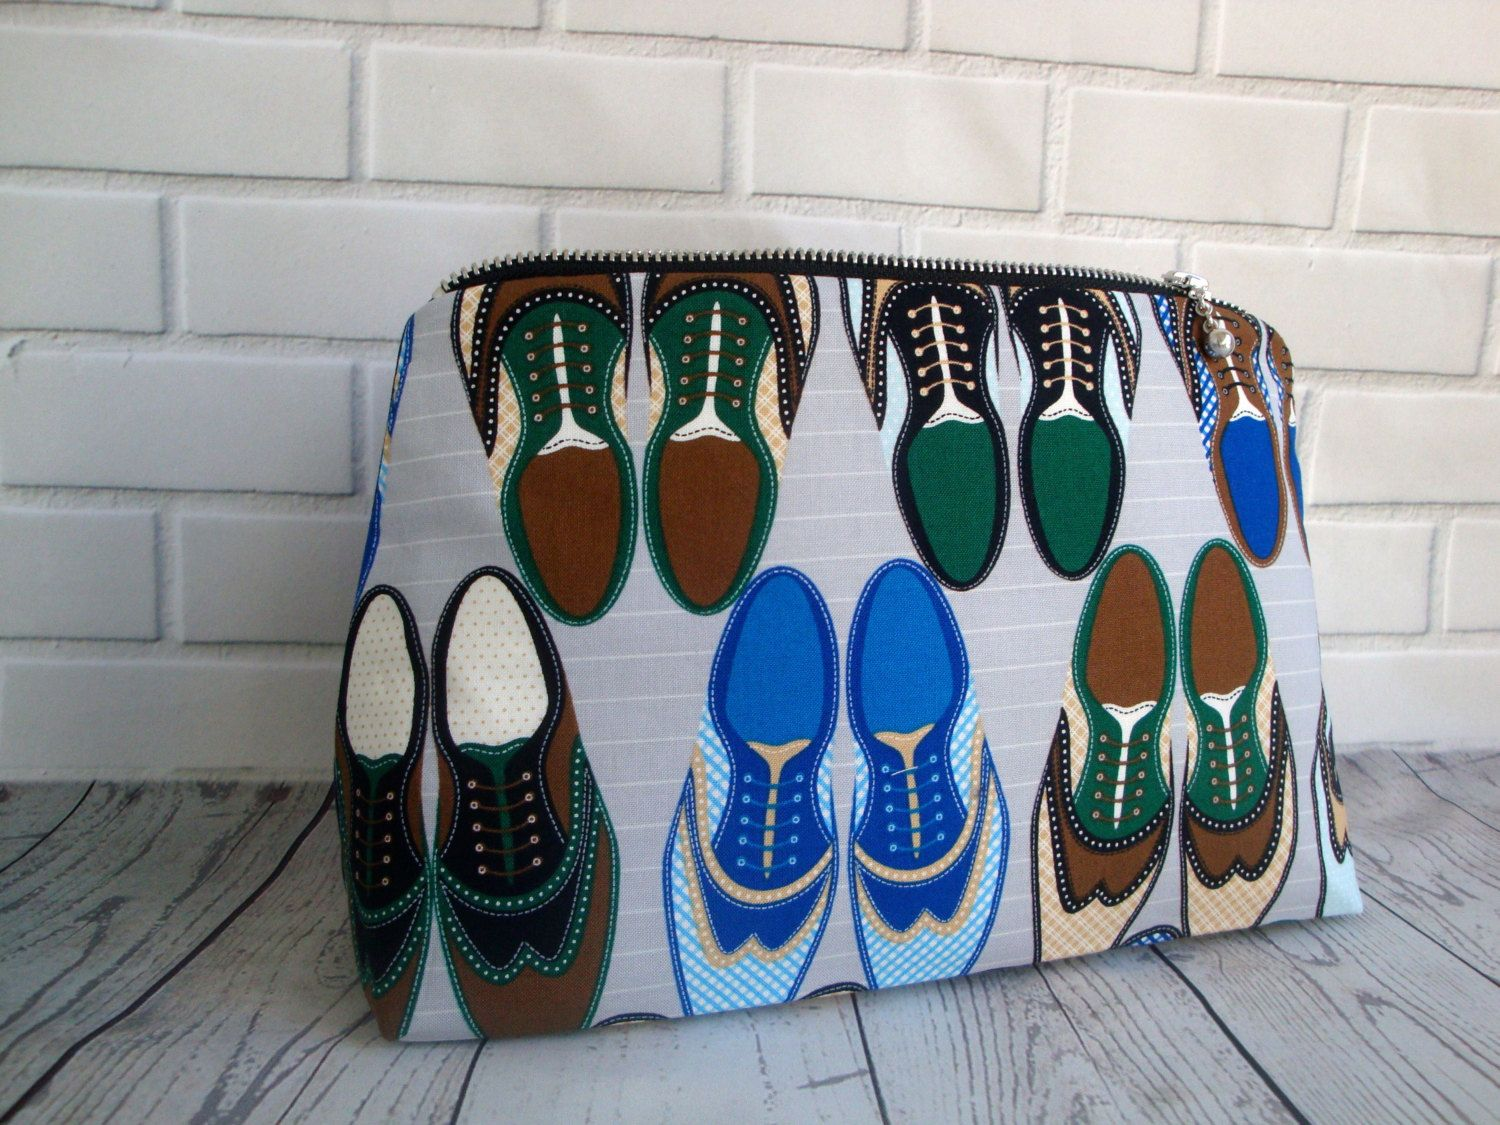 db3d341985 Mens funky Cotton Wash Bag - handmade - valentines gift - toiletry bag -  gift- shoe fabric - wash bag - unique mens wash bag by GerdaBags on Etsy